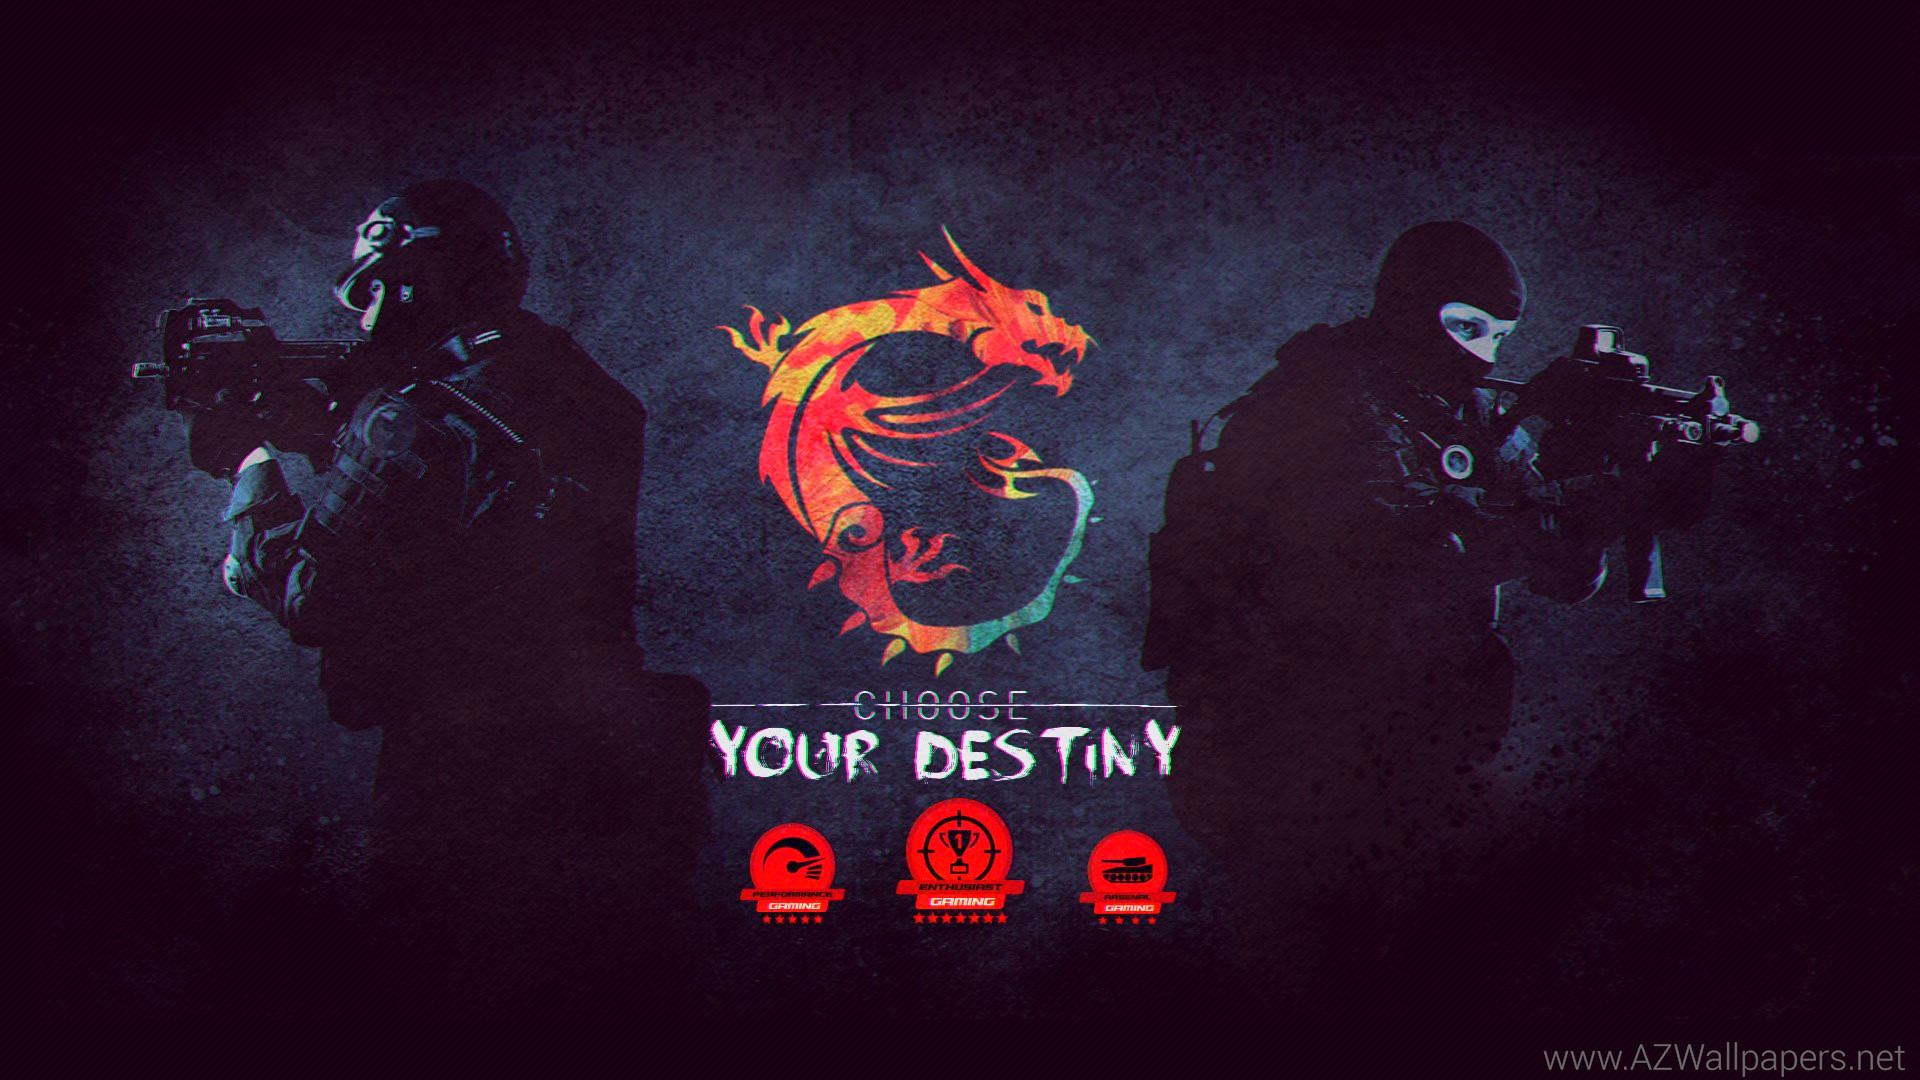 Msi wallpaper 1080p 82 images for Wallpaper to go